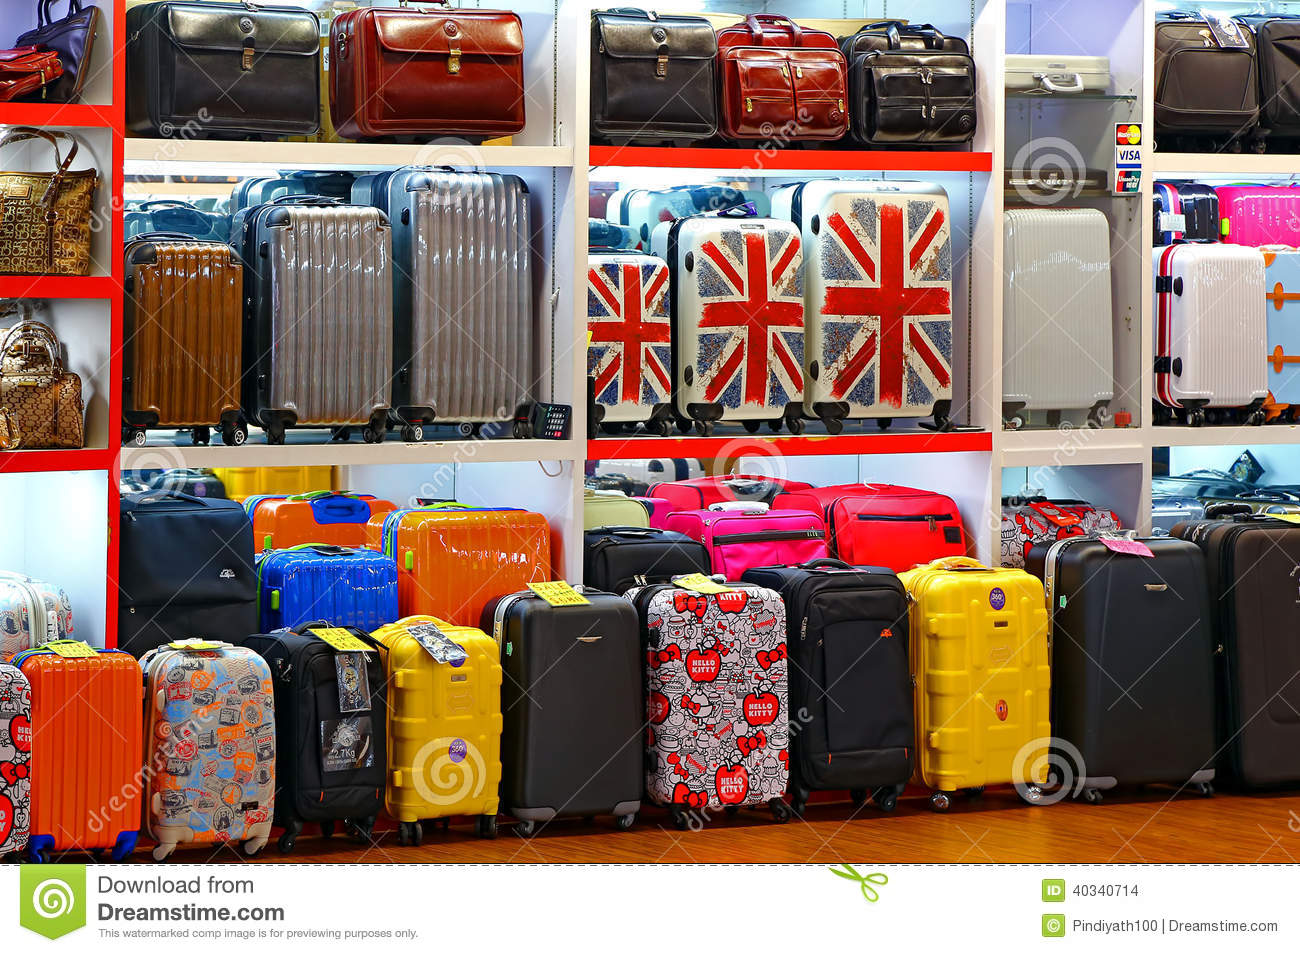 Bags And Luggage Store Editorial Stock Image - Image: 40340714